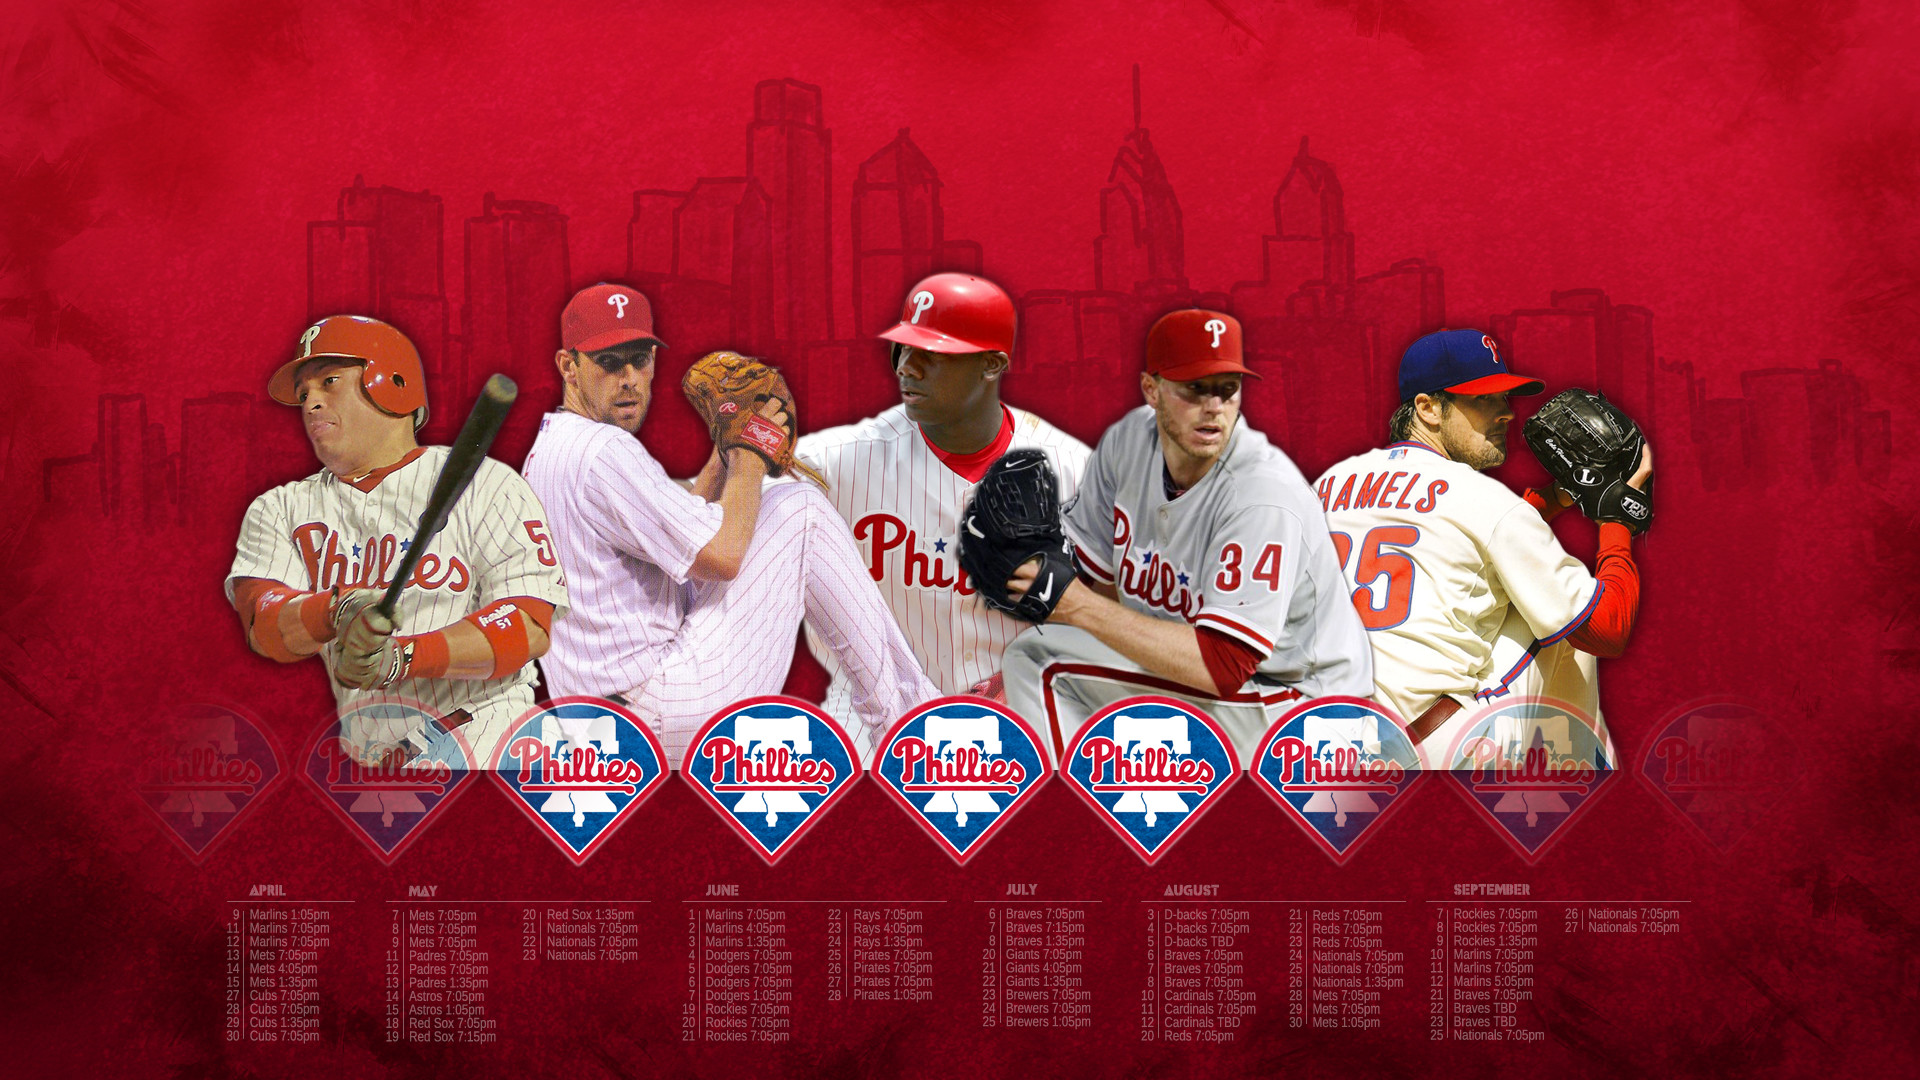 1920x1080 Phillies Wallpaper Download 7